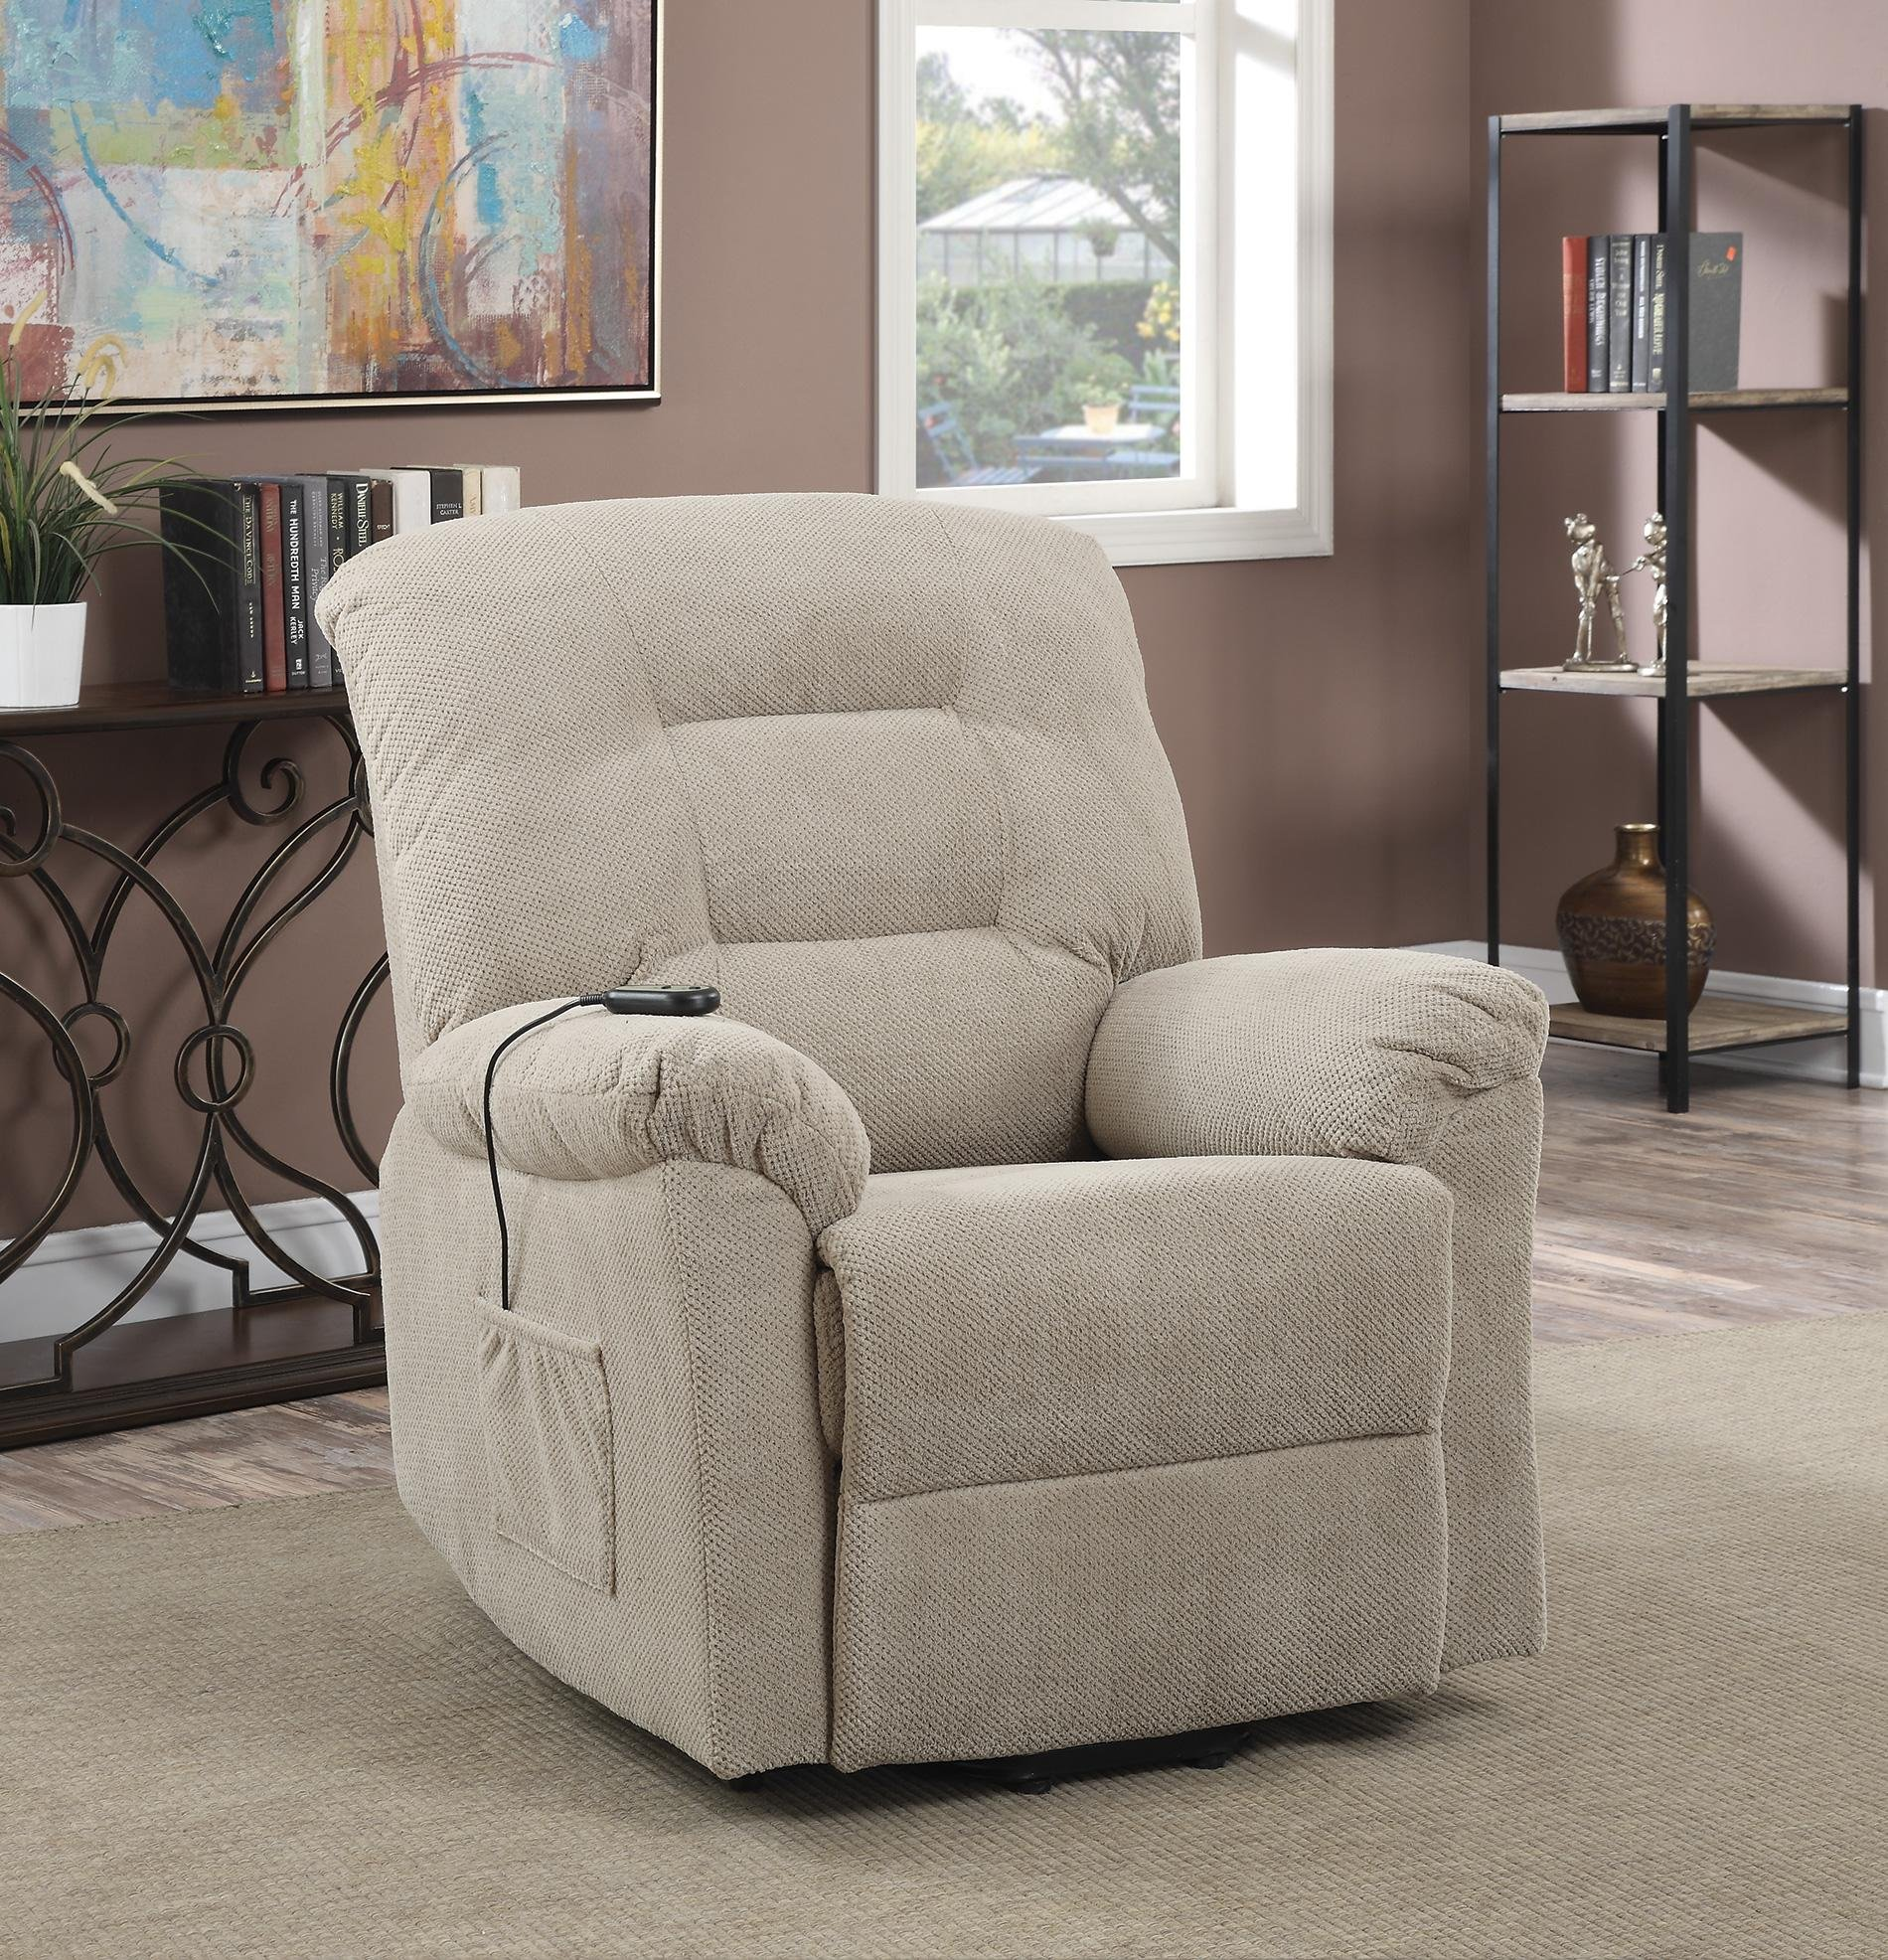 Coaster Casual Chenille Fabric Upholstered Power Lift Recliner, Taupe